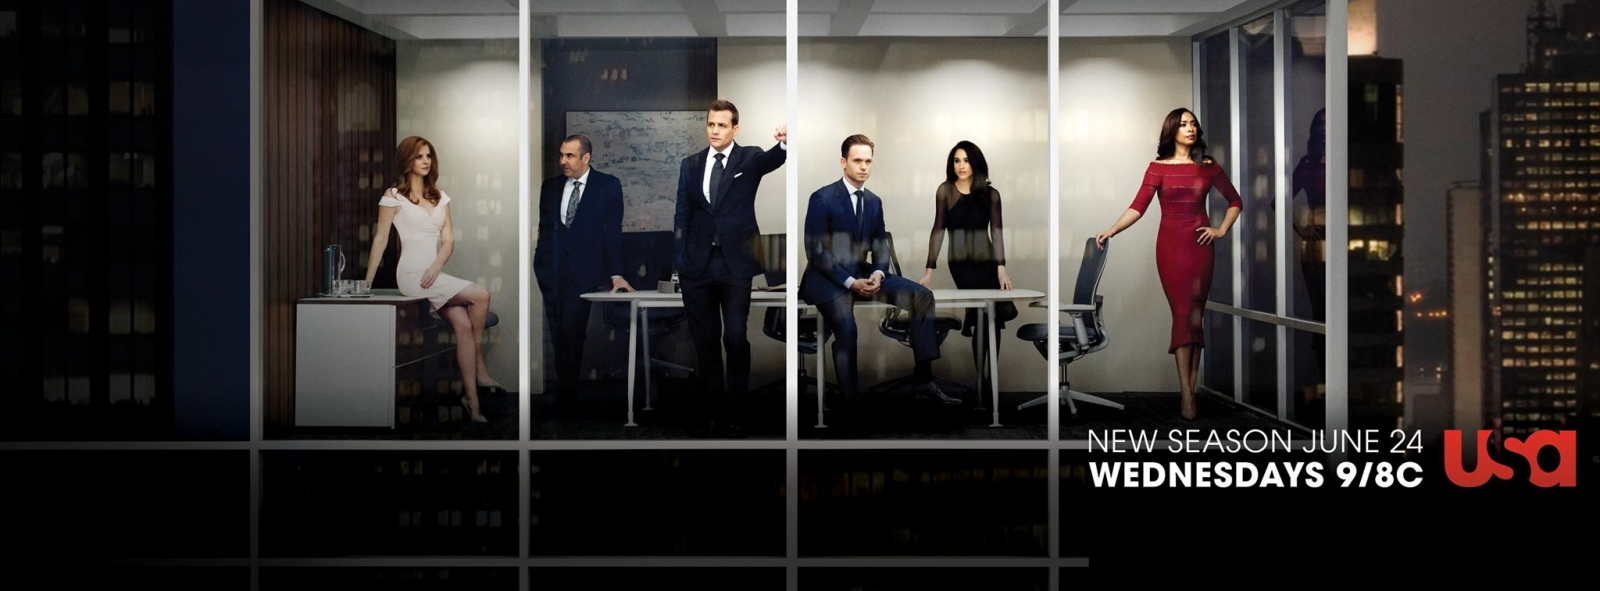 Watch Suits season 5 premiere live online: Harvey and Donna move ...